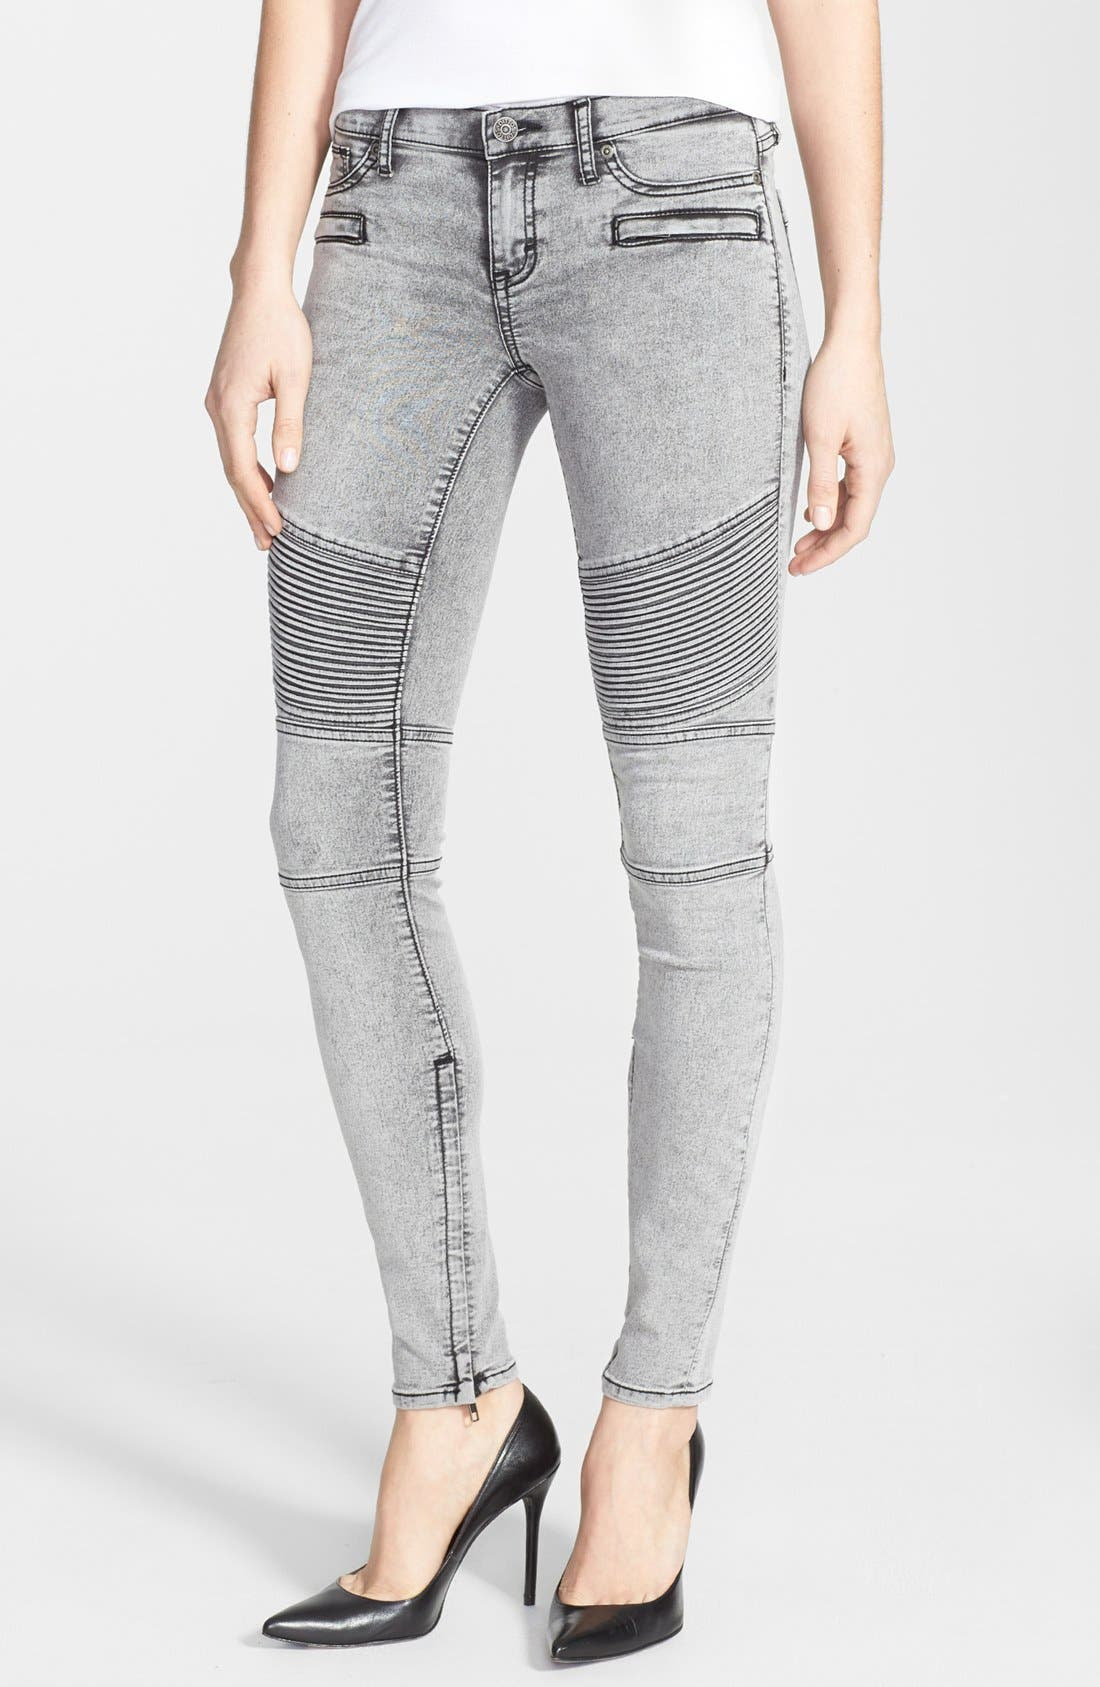 Alternate Image 1 Selected - Dittos 'Courtney' Low Rise Skinny Moto Jeans